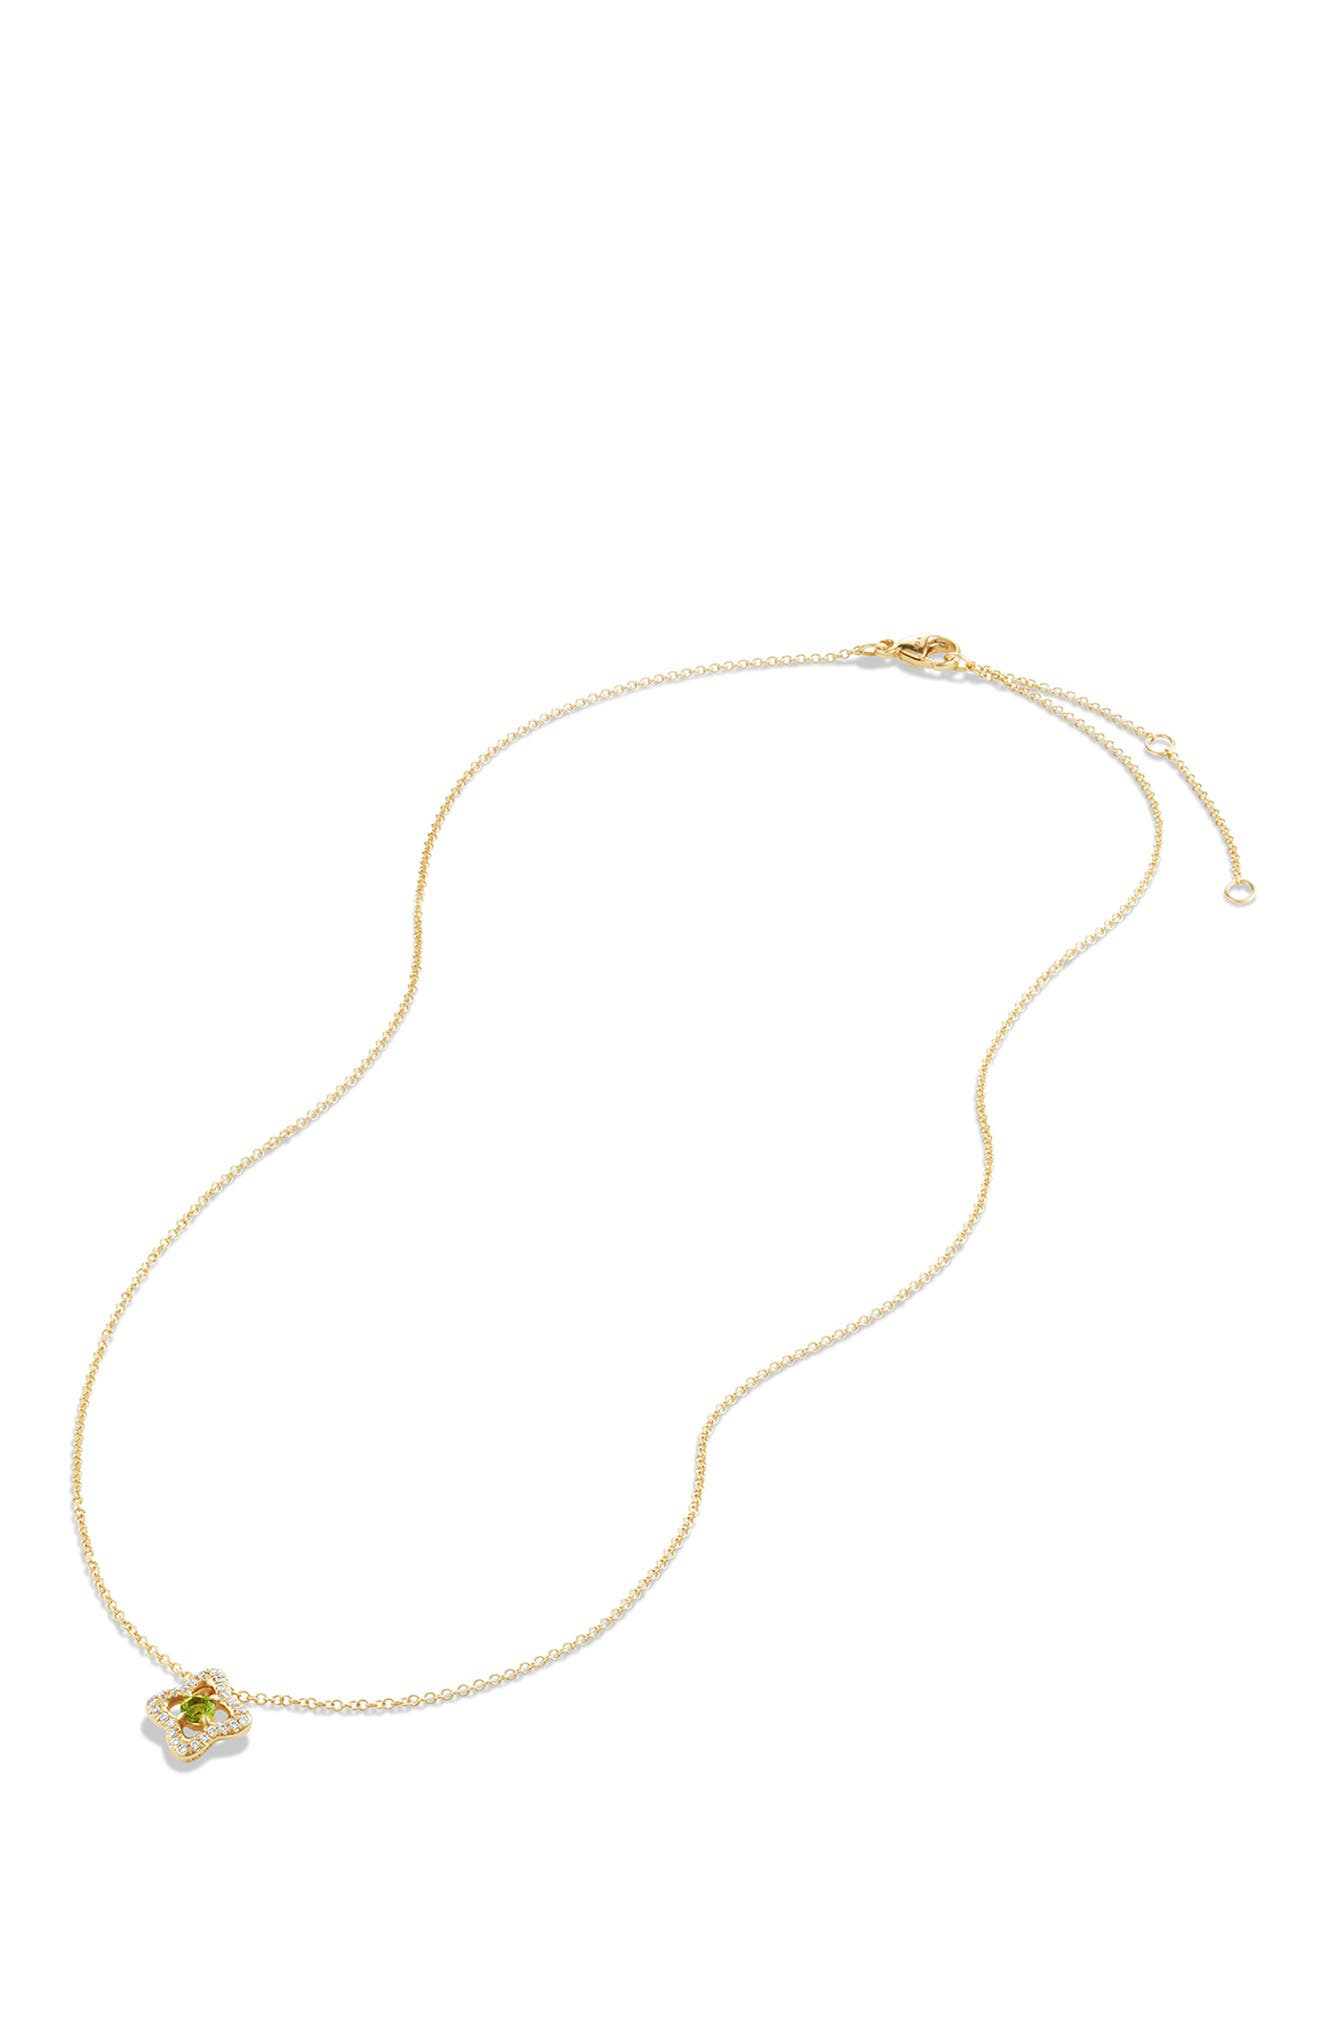 DAVID YURMAN, 'Venetian Quatrefoil' Necklace with Diamonds in 18K Gold, Alternate thumbnail 4, color, PERIDOT